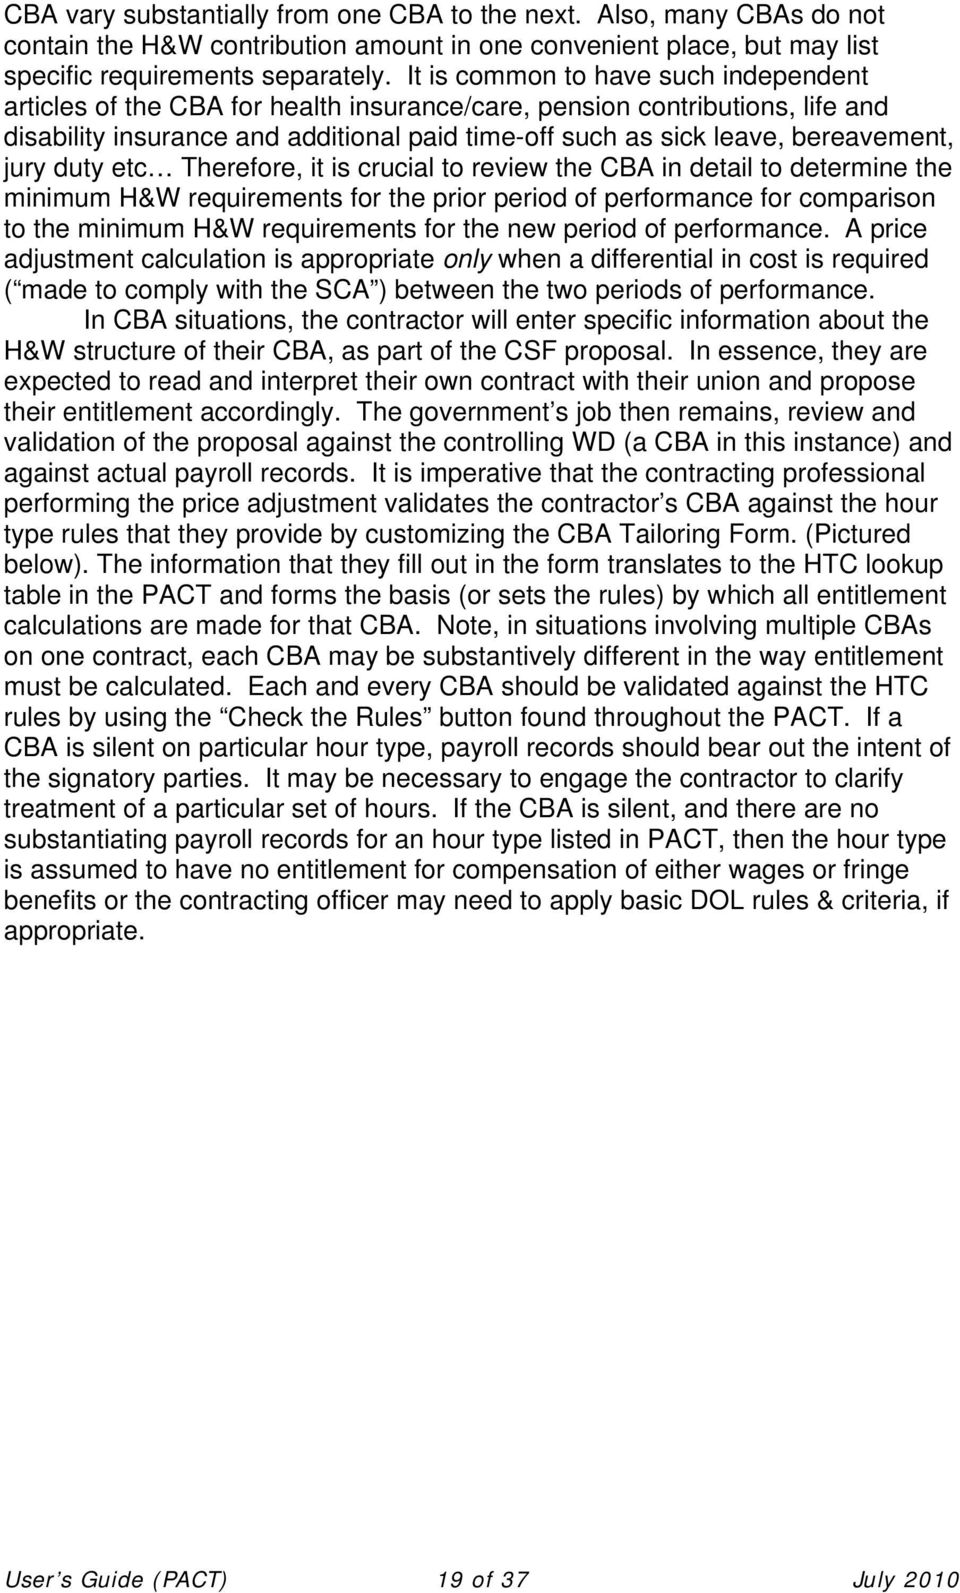 jury duty etc Therefore, it is crucial to review the CBA in detail to determine the minimum H&W requirements for the prior period of performance for comparison to the minimum H&W requirements for the